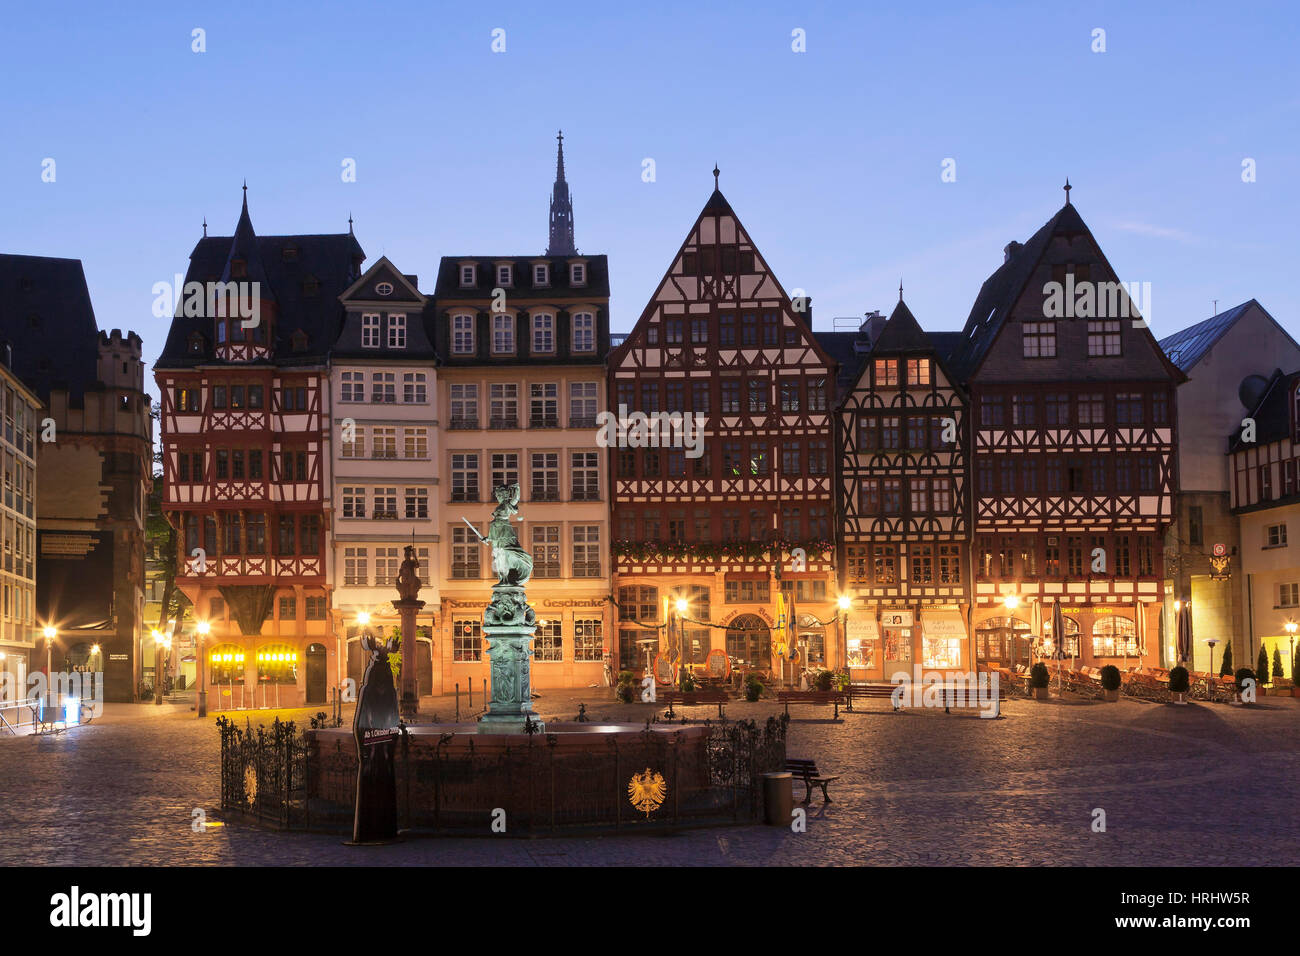 Half-timbered houses and Justitia Fountain at Roemerberg square, Frankfurt, Hesse, Germany - Stock Image